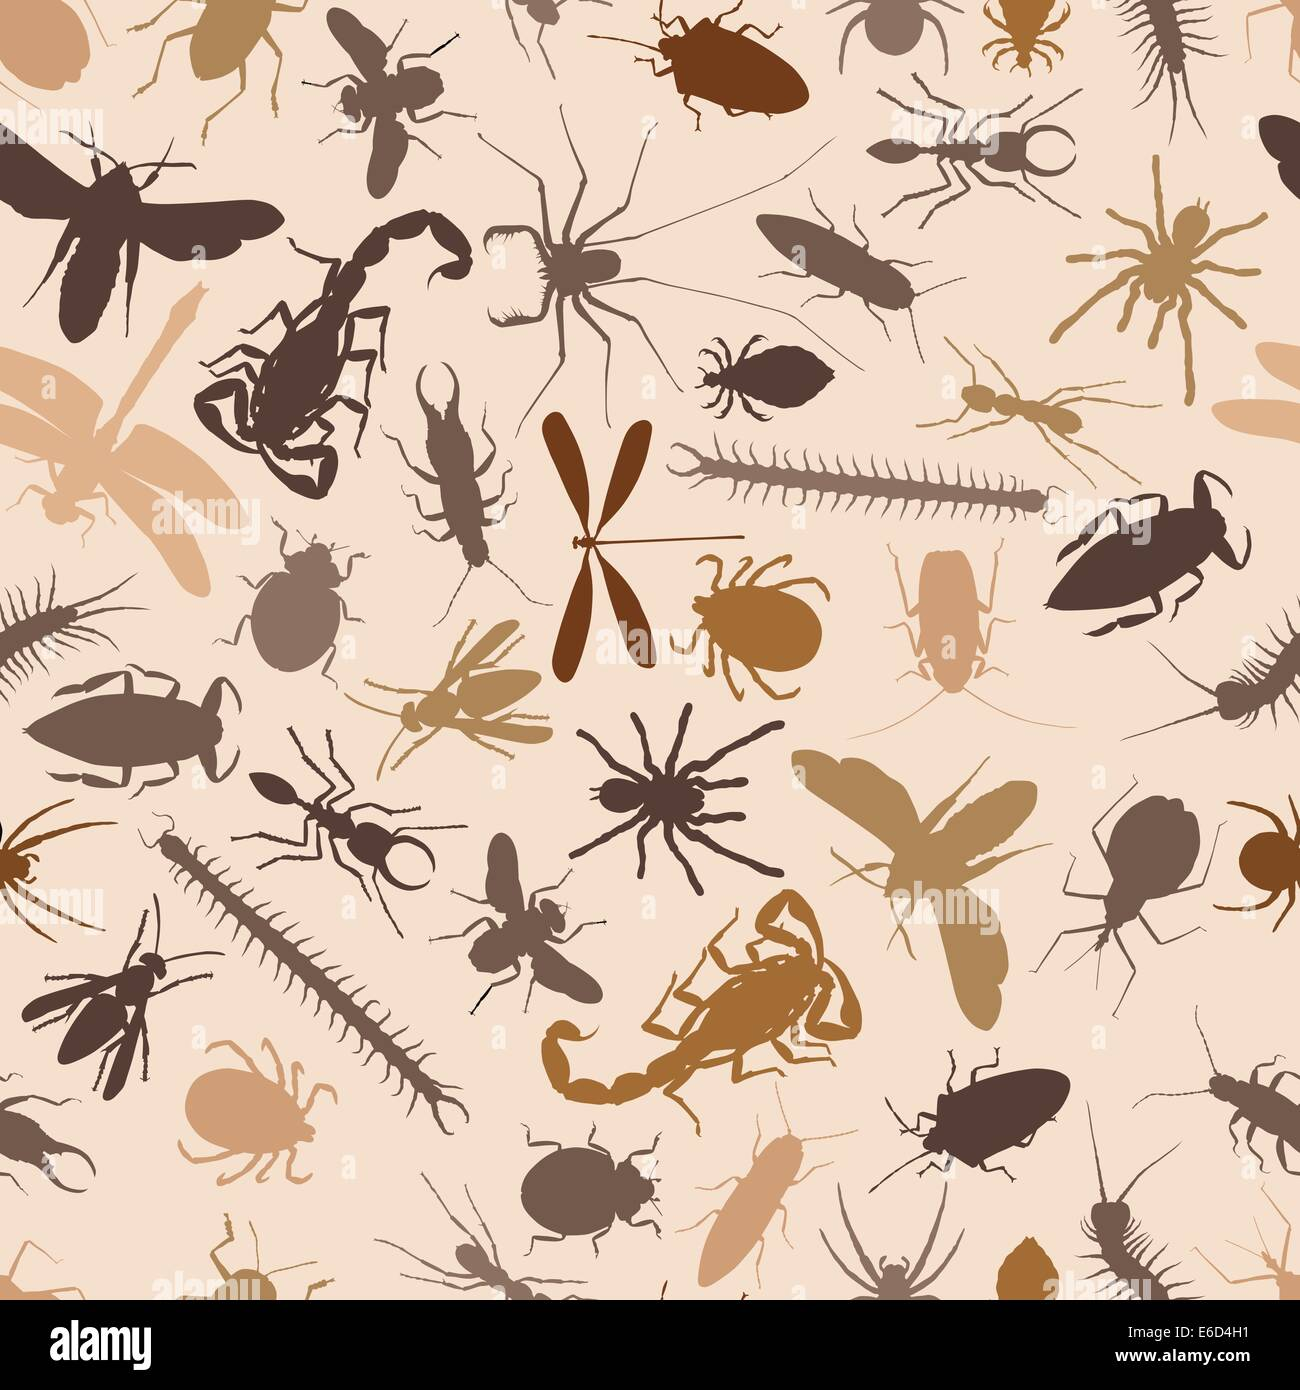 Editable vector seamless tile of various insects and other invertebrates - Stock Vector